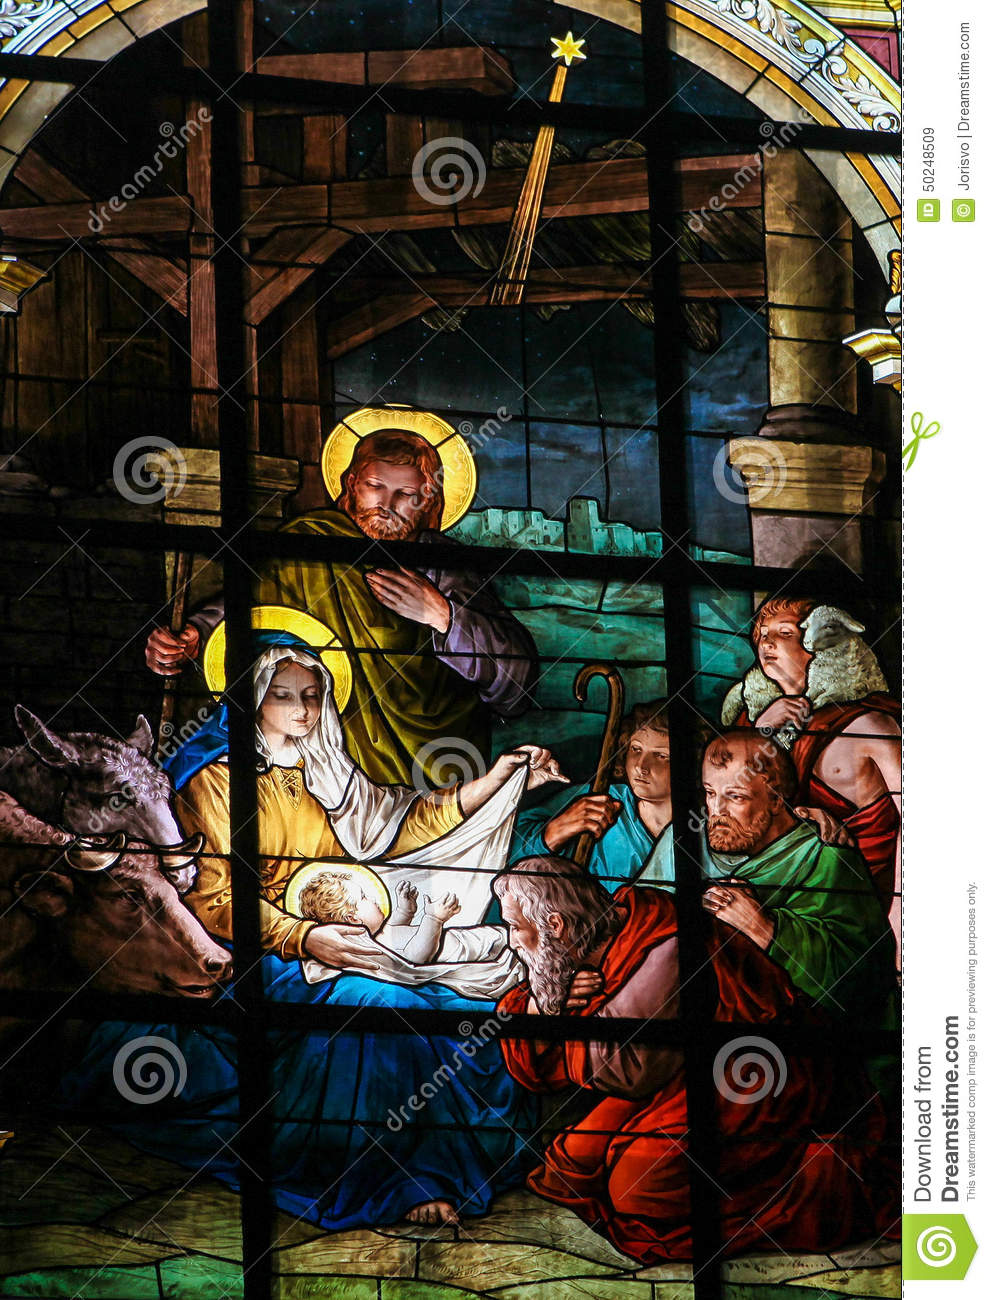 Nativity Scene At Christmas - Stained Glass Window Stock Photo - Image ...